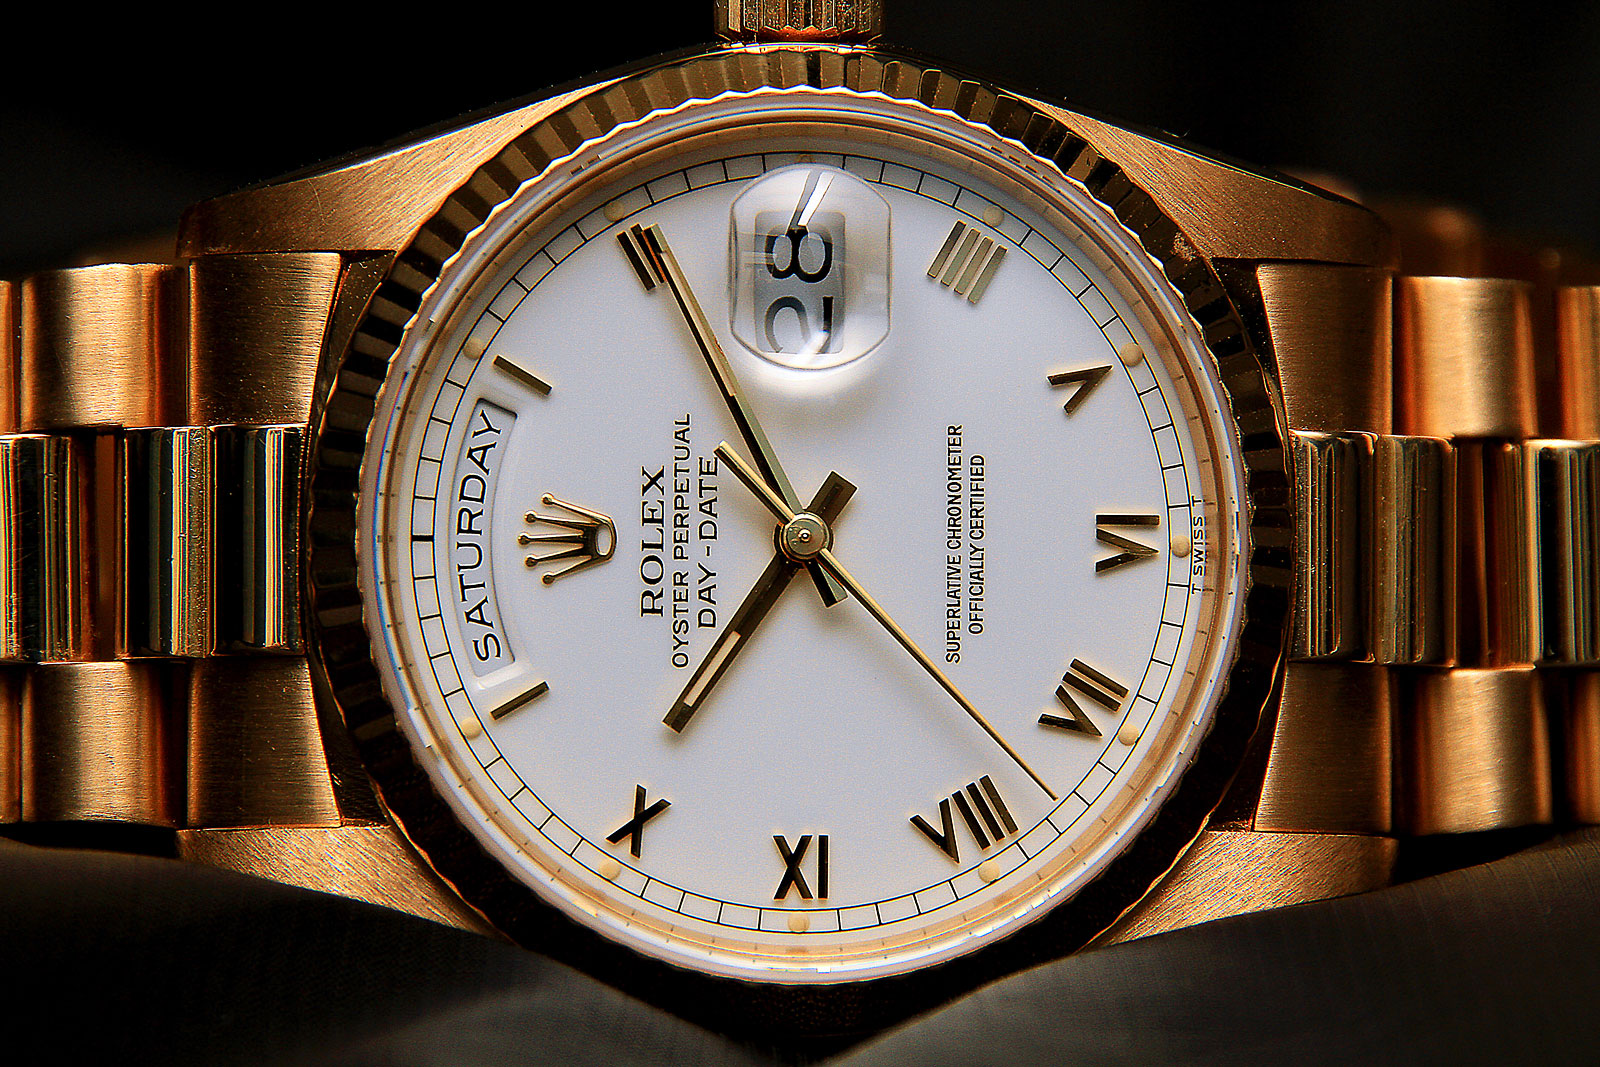 c2decfae65a Welcome to RolexMagazinecomHome of Jakes Rolex World Magazine 1600x1067